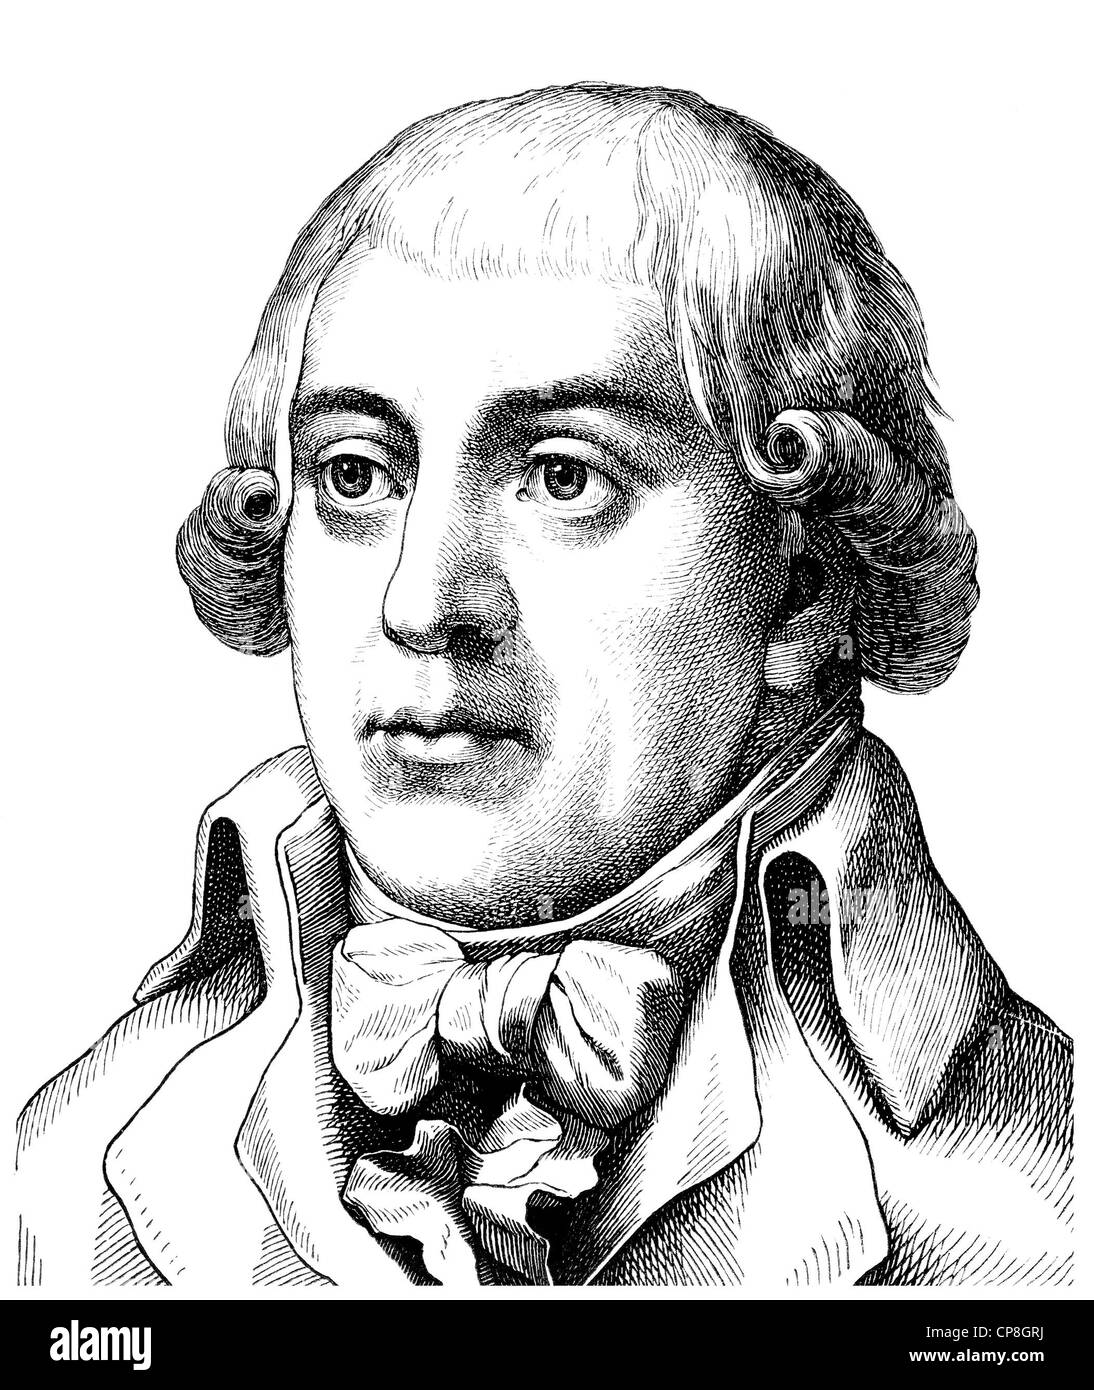 Gottfried August Buerger, 1747 - 1794, a German poet of the Enlightenment, author of The Adventures of Baron Munchausen, Stock Photo